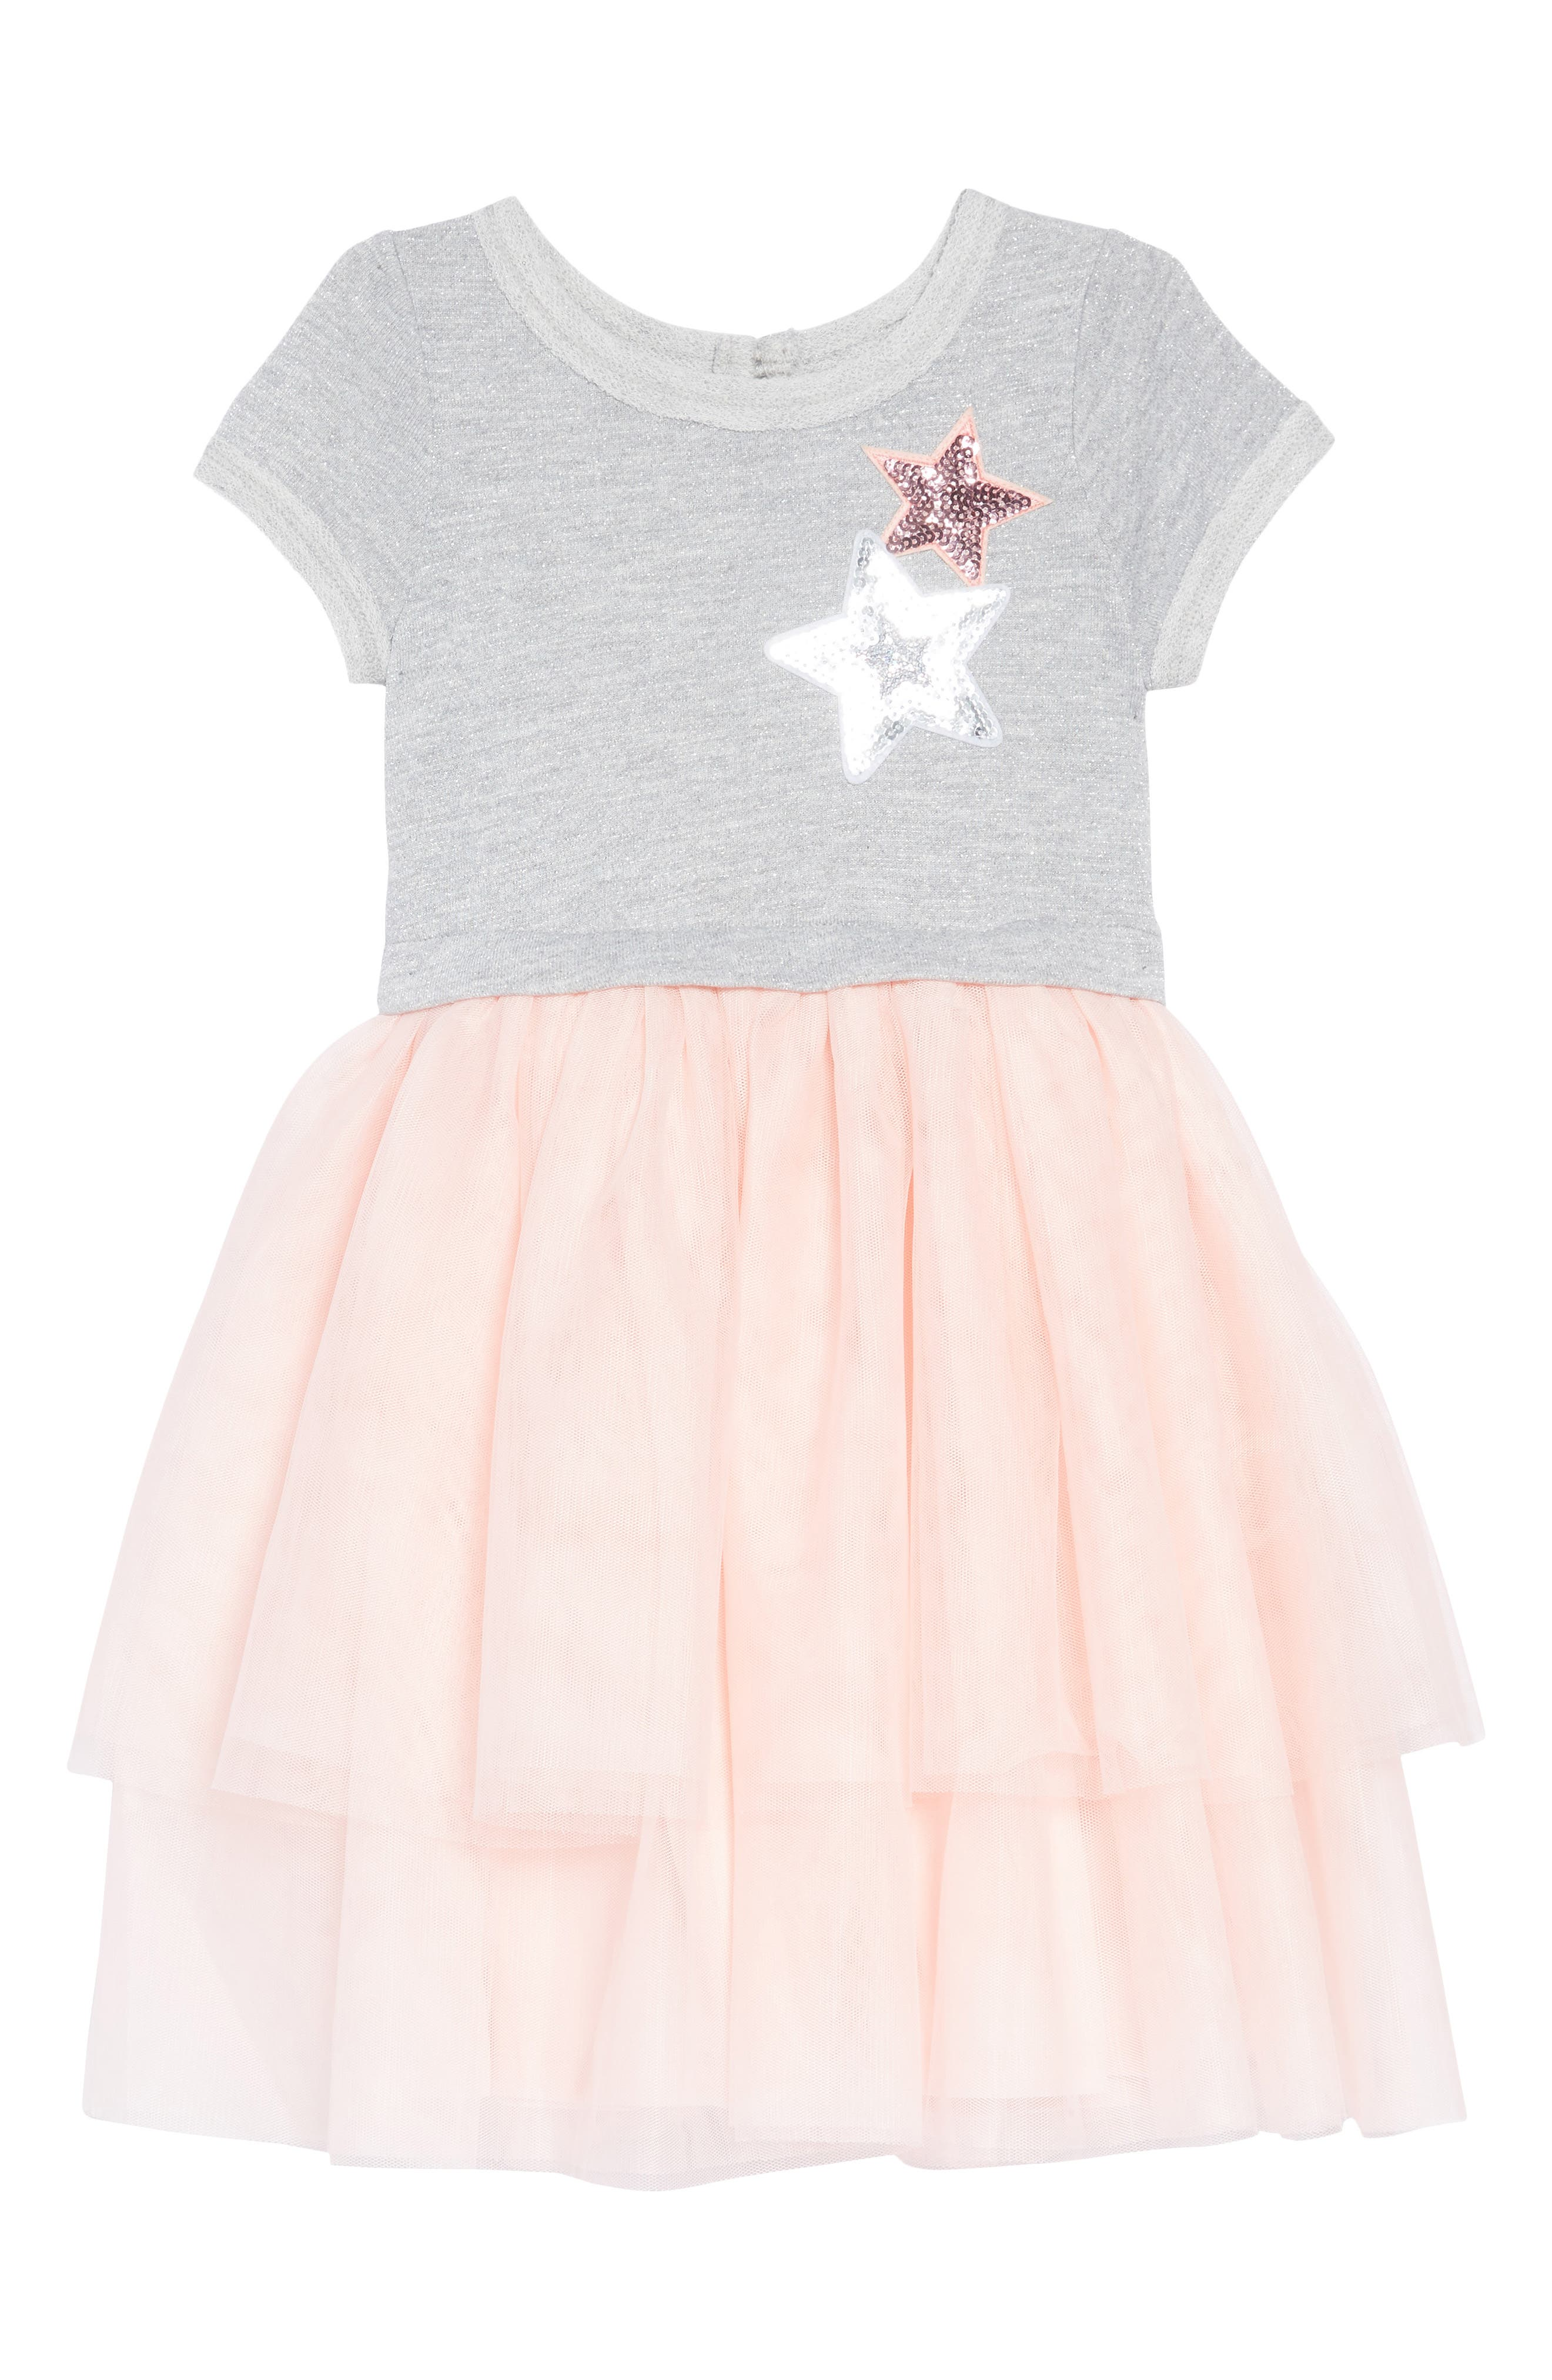 Tiered Tutu Dress,                             Main thumbnail 1, color,                             PINK